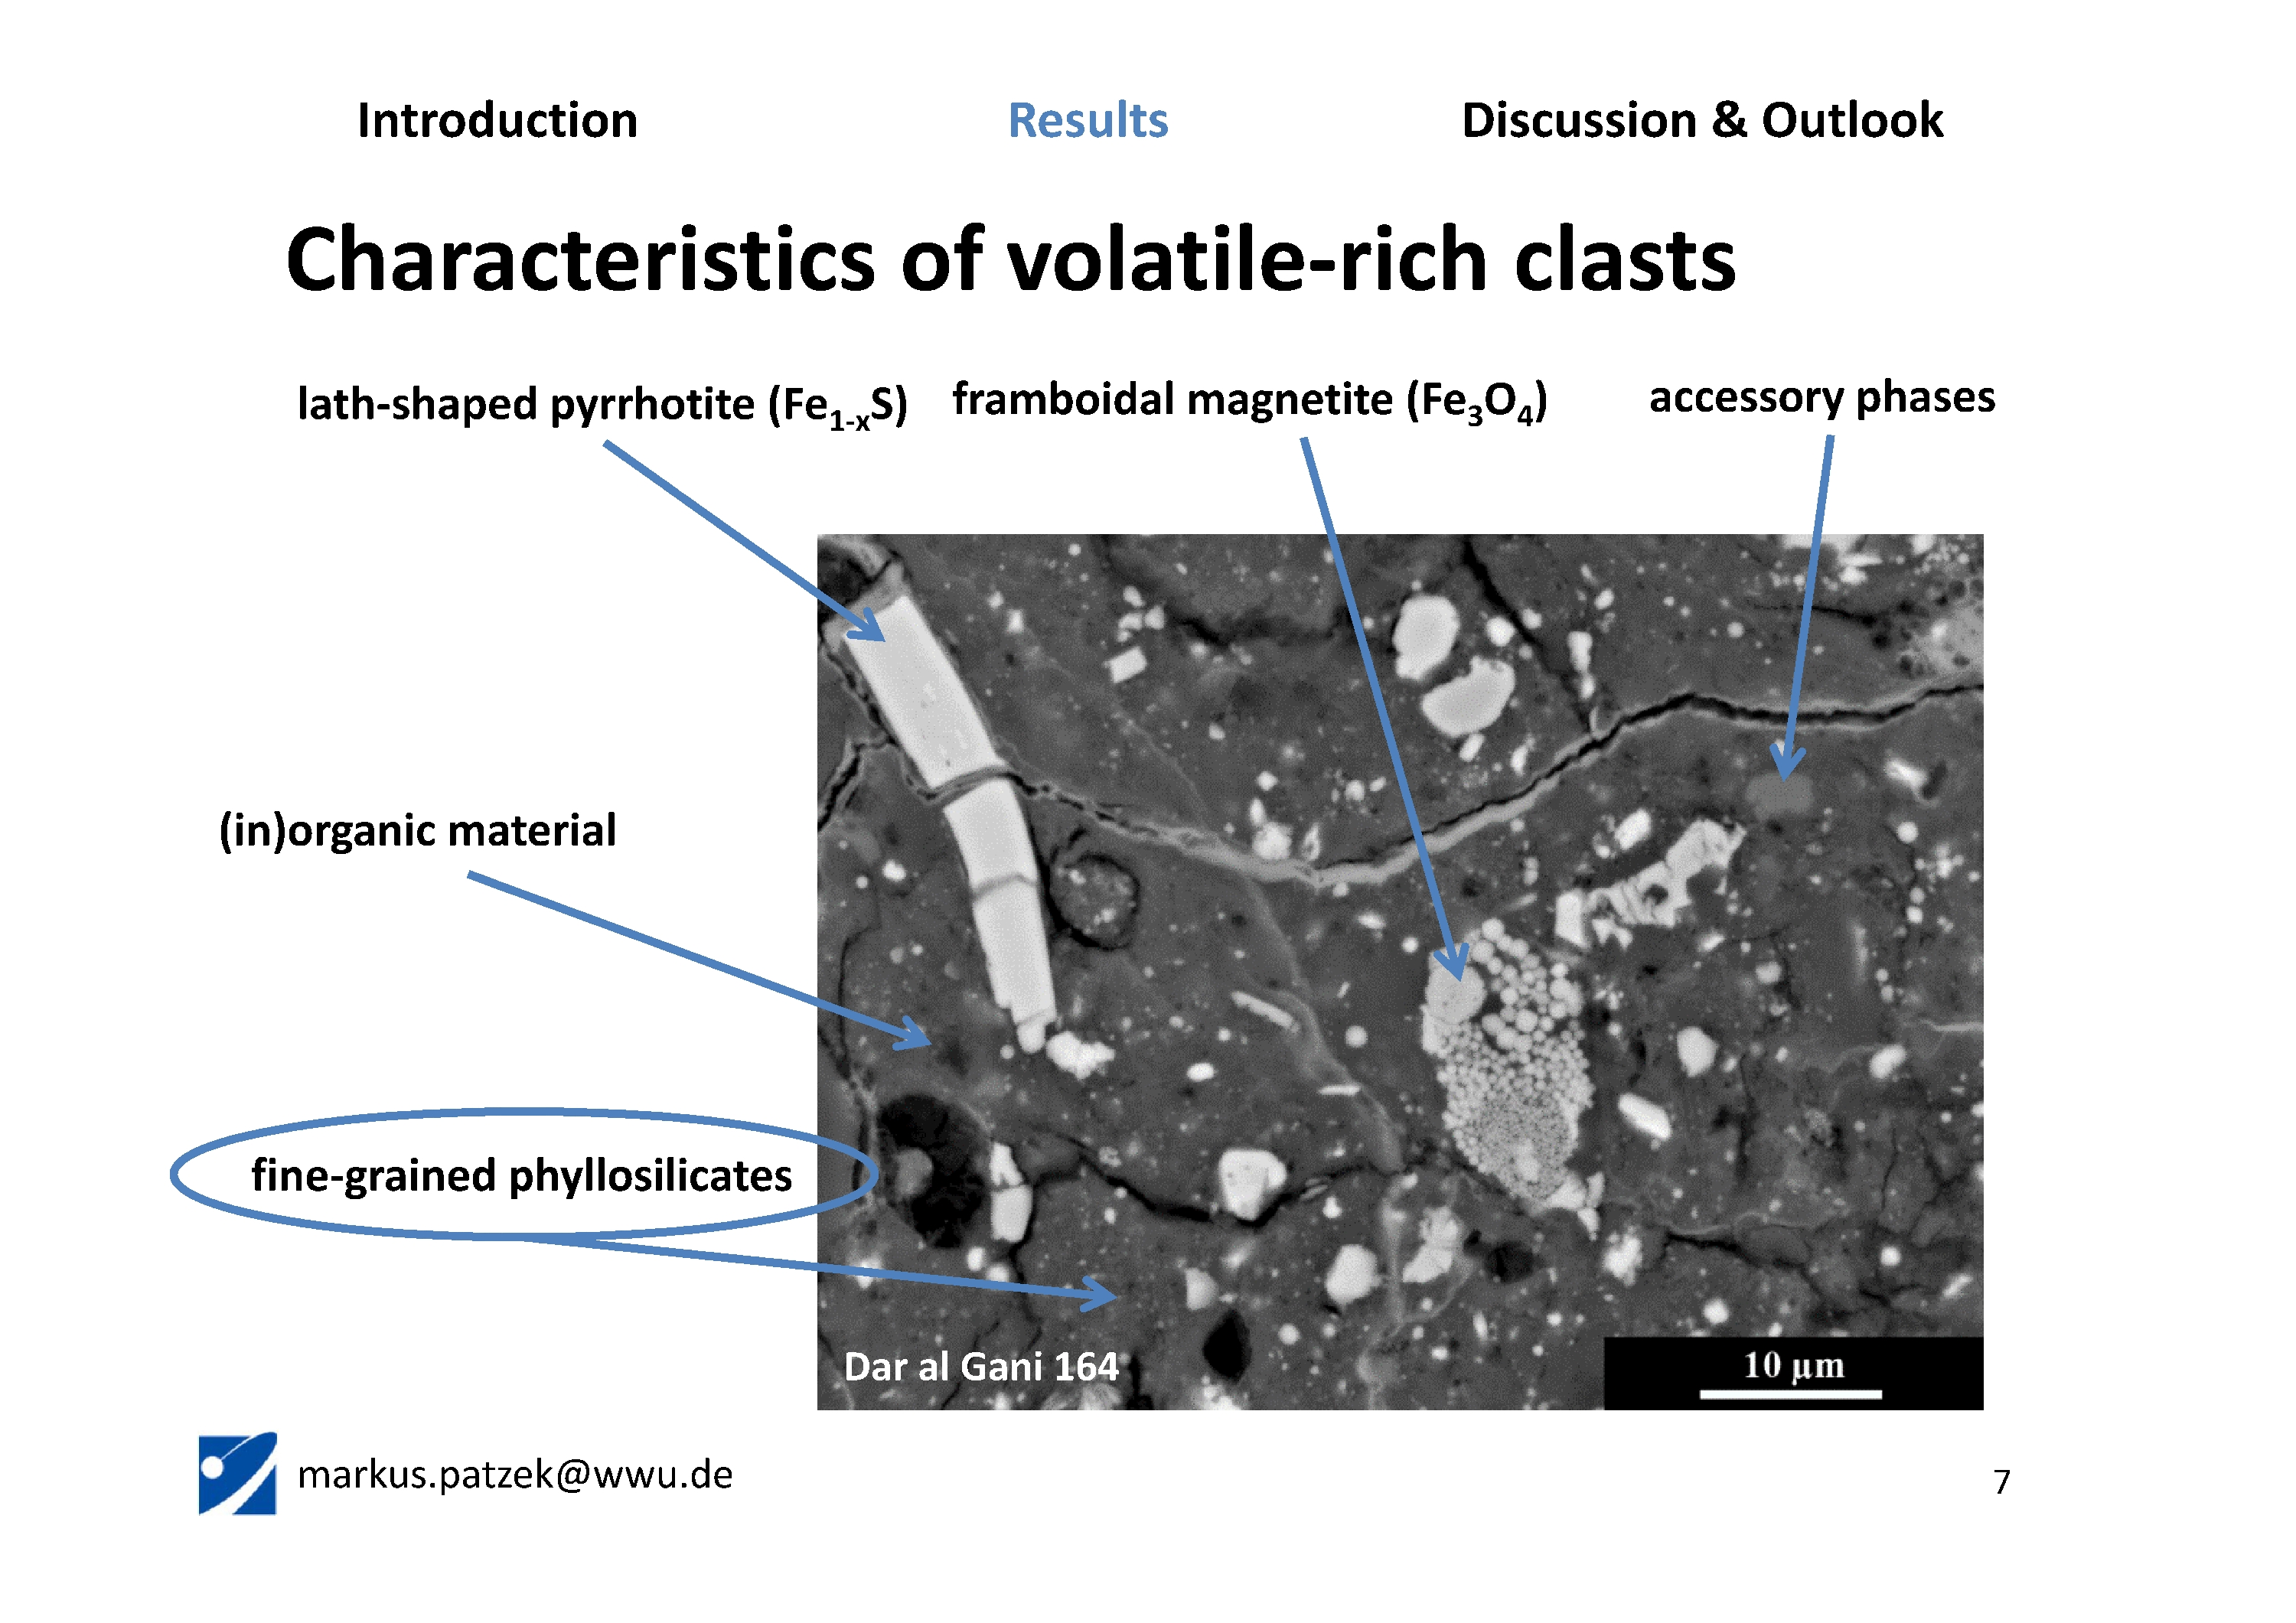 Characteristics of volatile-rich clasts (CI-like)